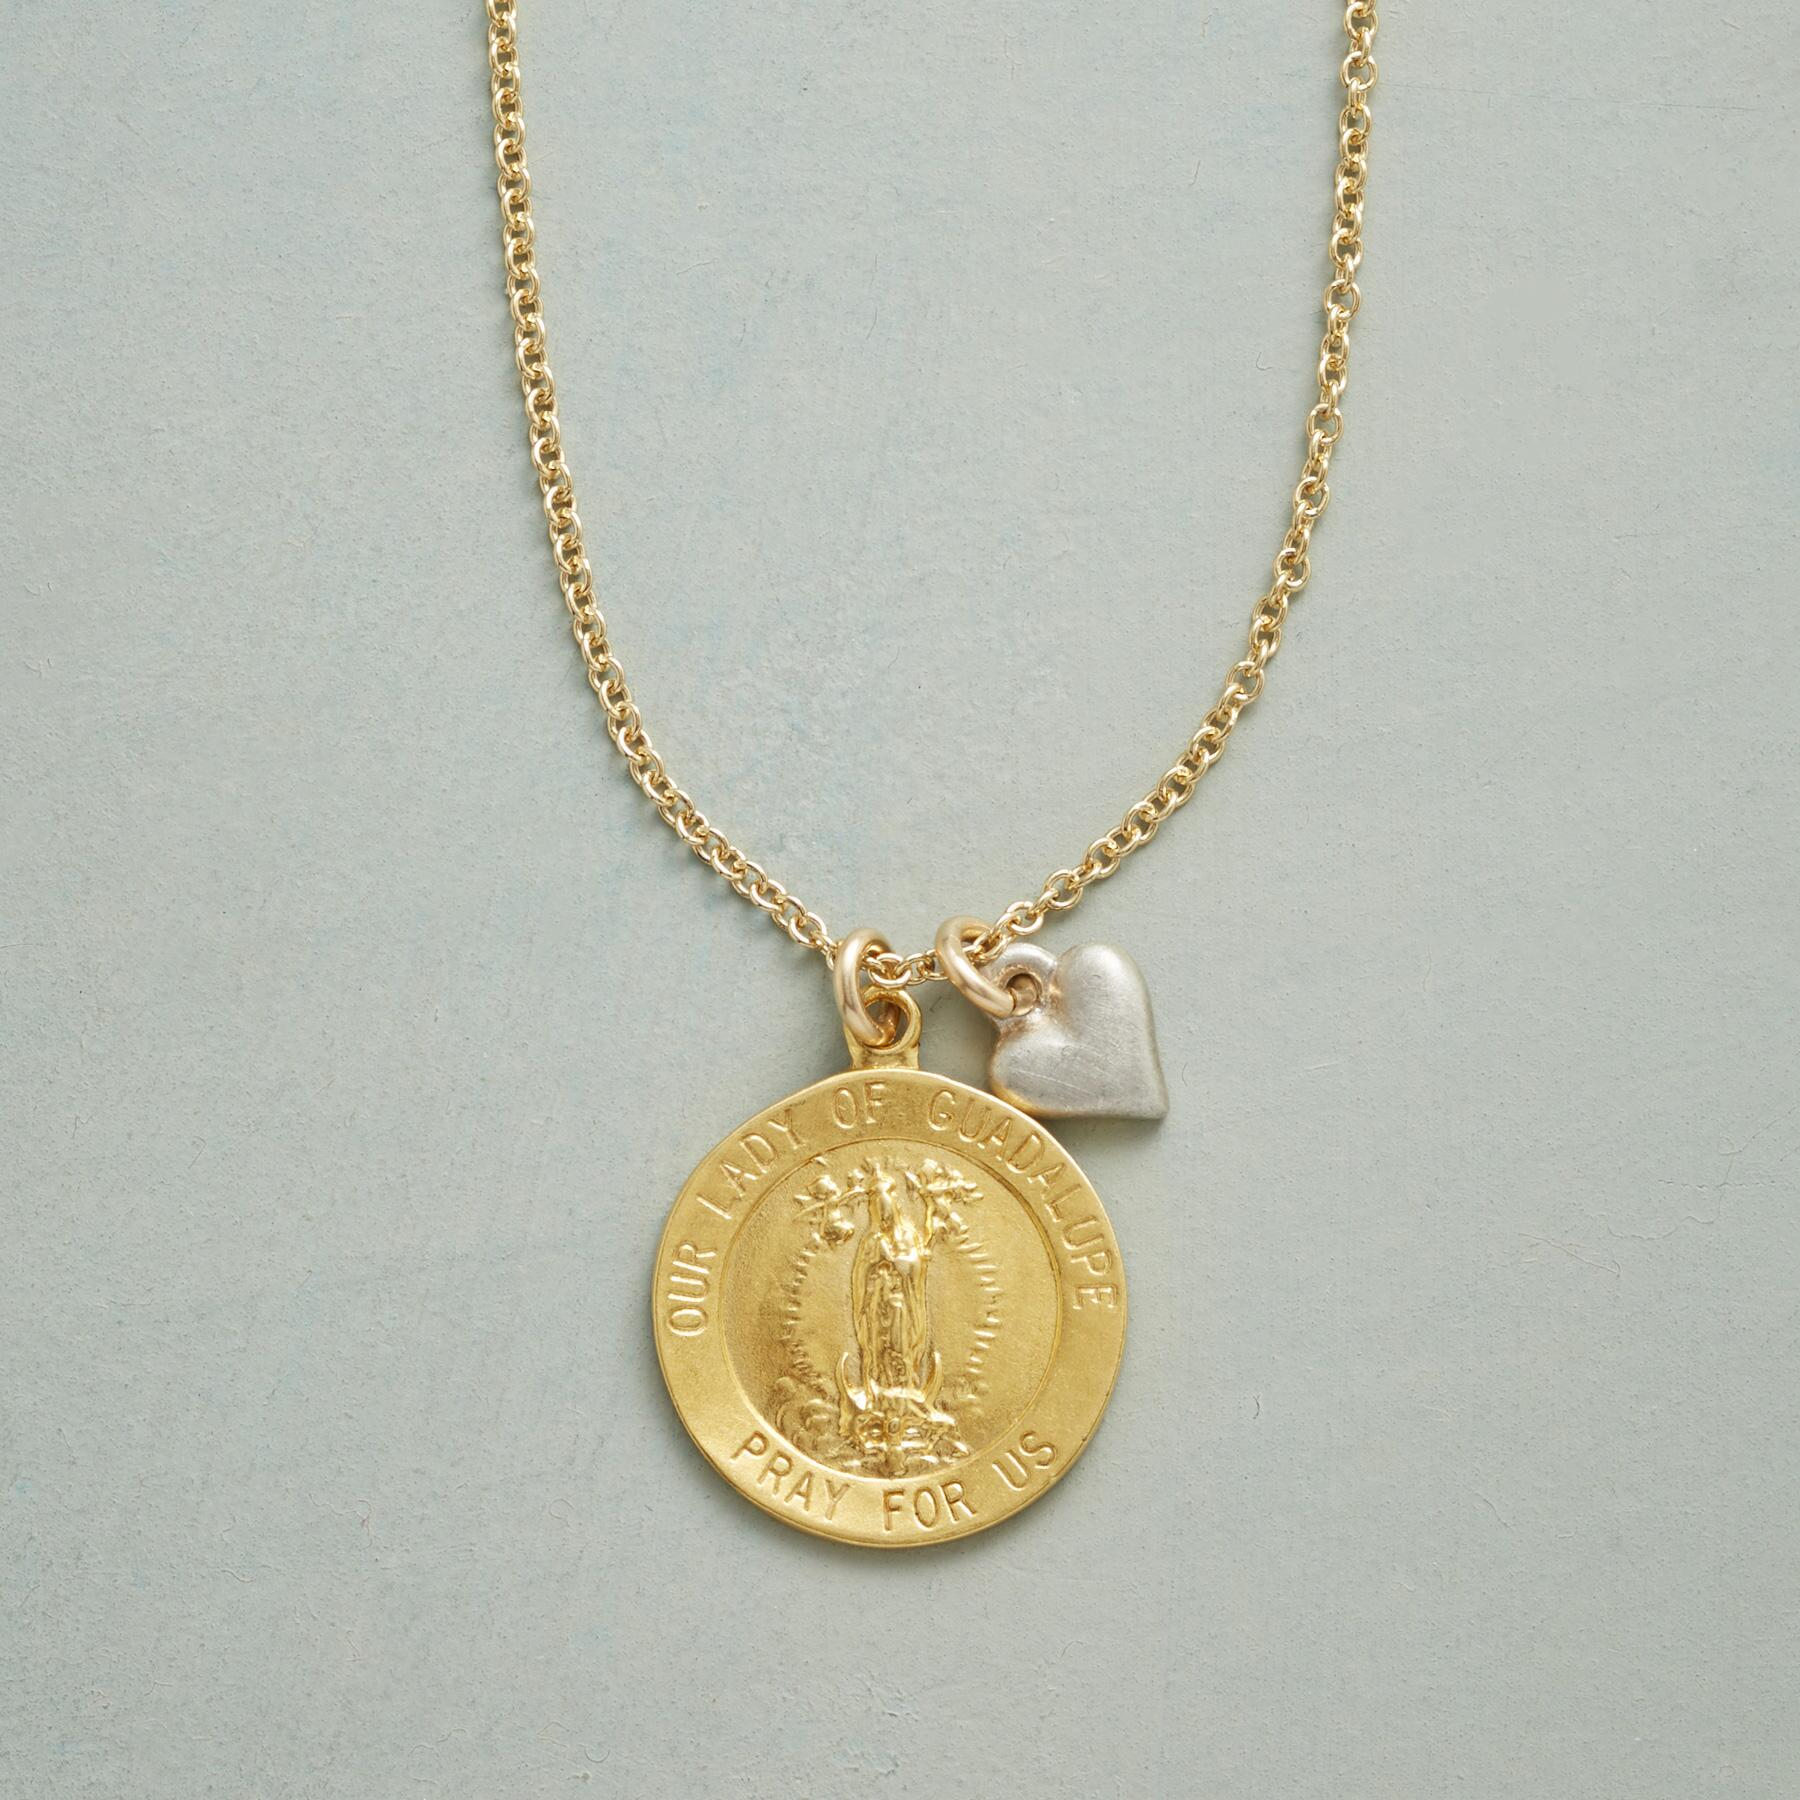 OUR LADY OF GUADALUPE NECKLACE: View 1